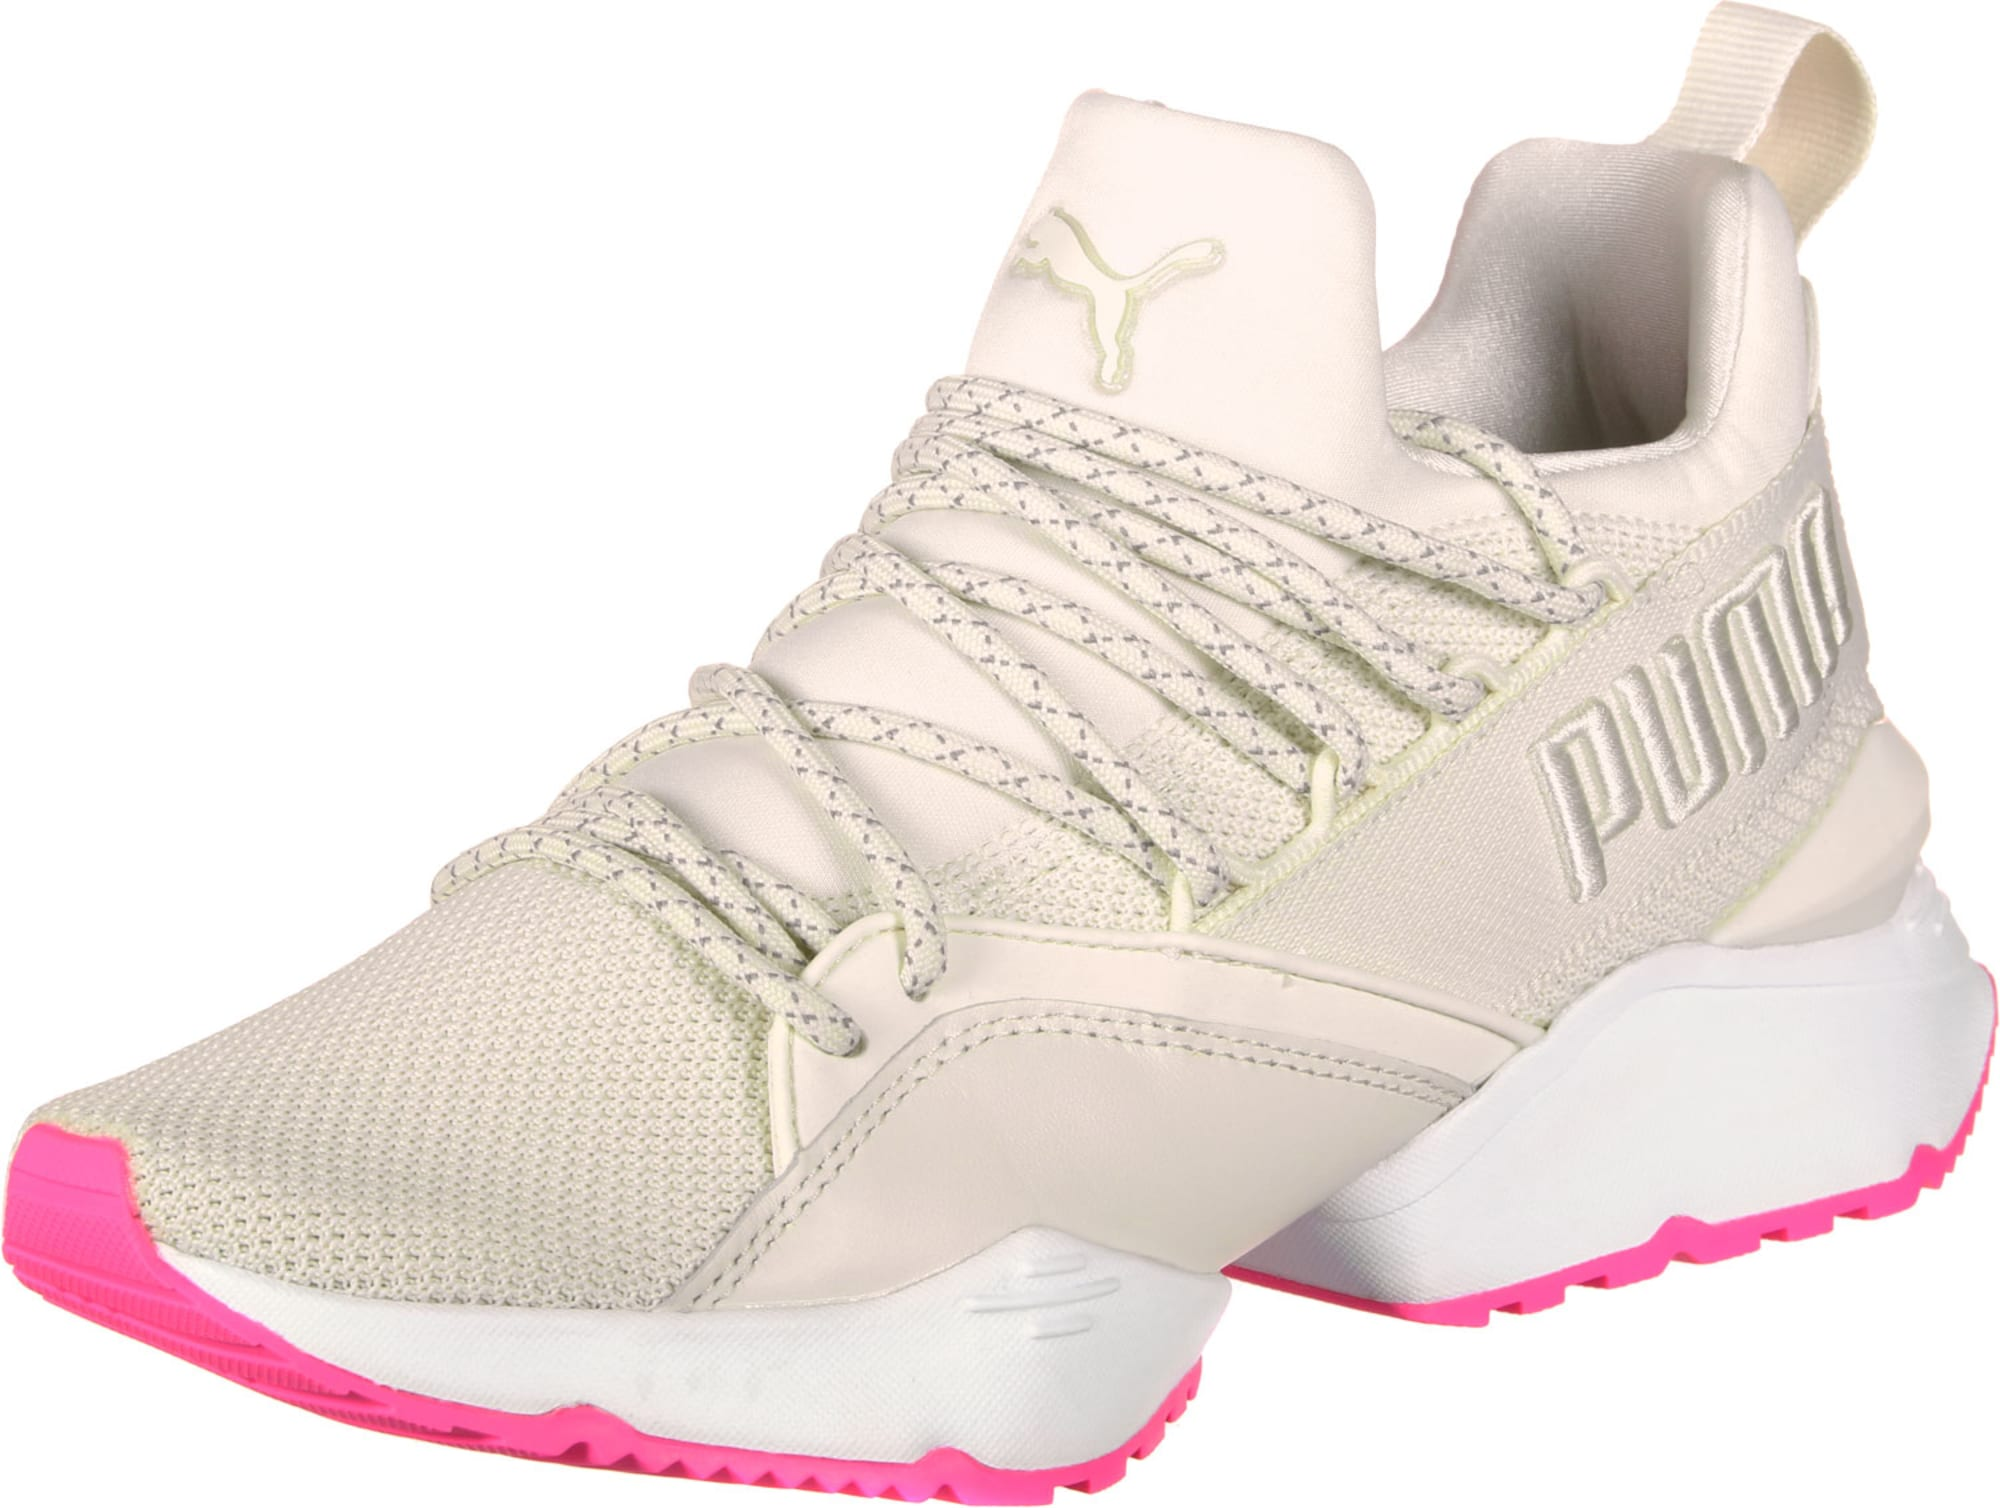 PUMA, Dames Sneakers laag 'Muse Maia Up W', pink / wit